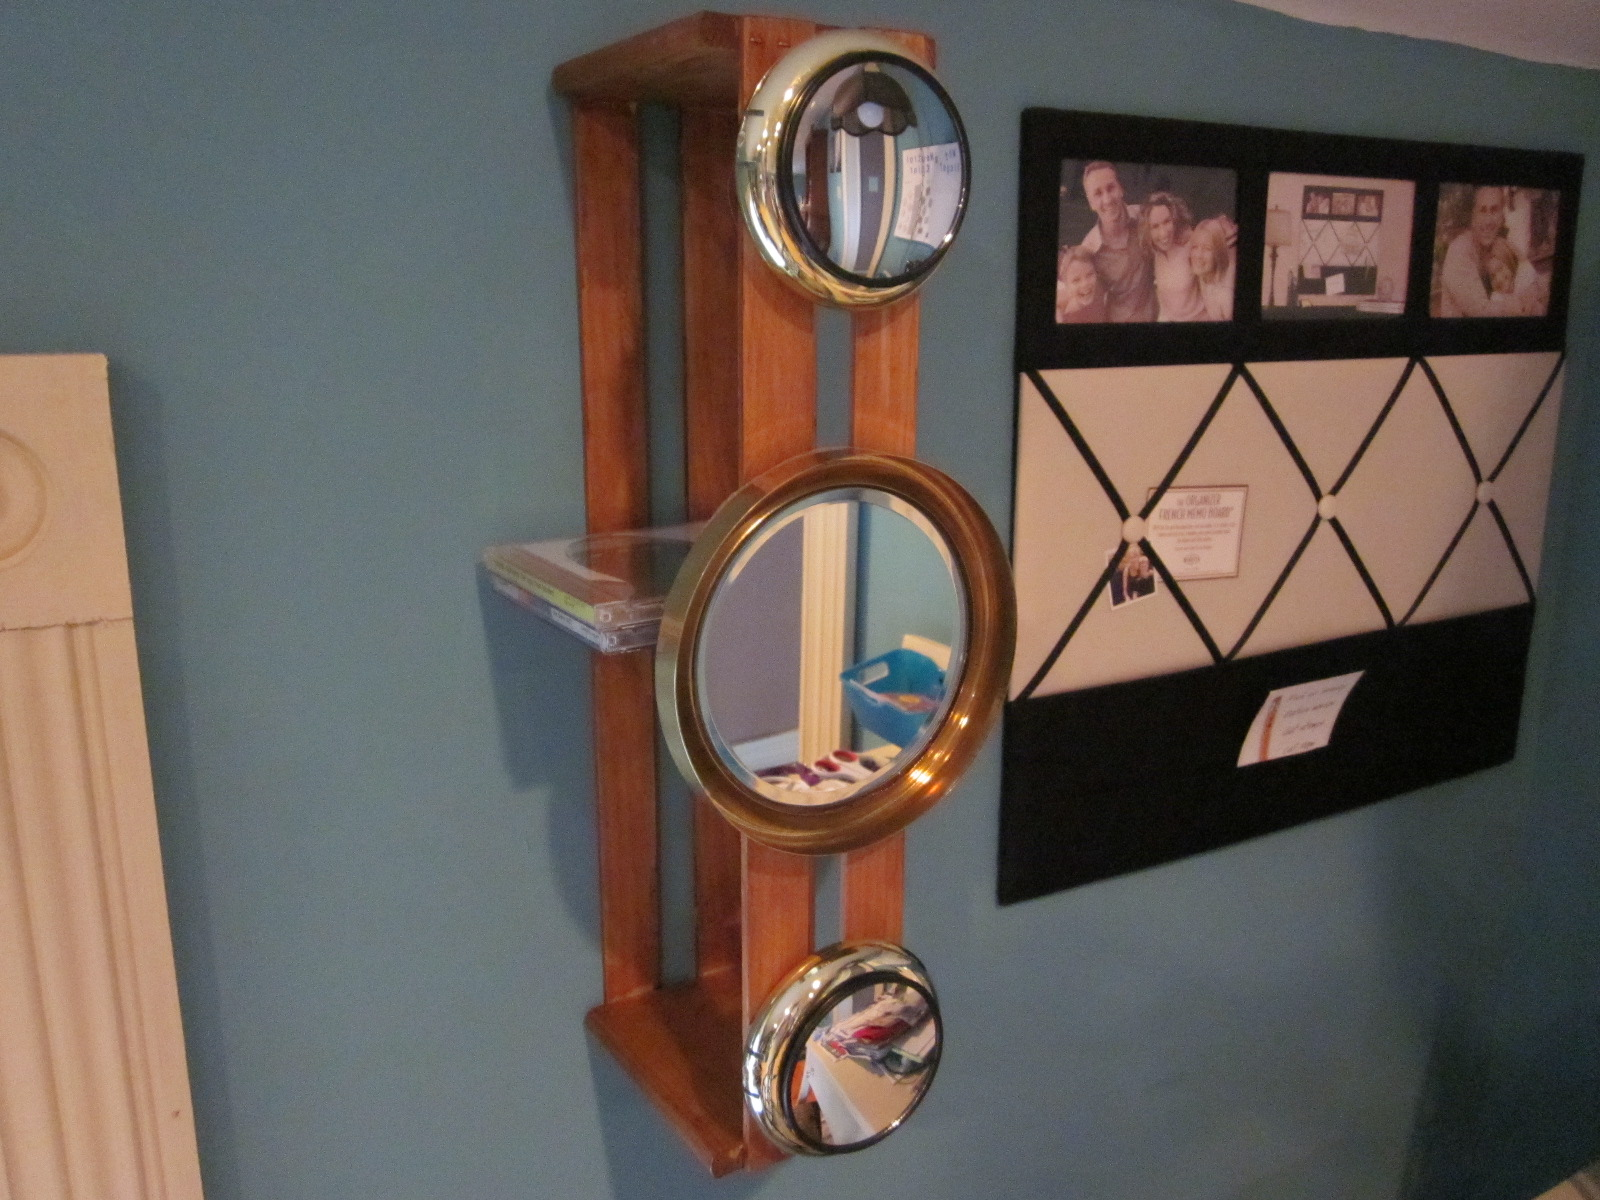 Repurposed Items Charm Them At Hello Make A Decorative Storage Rack With